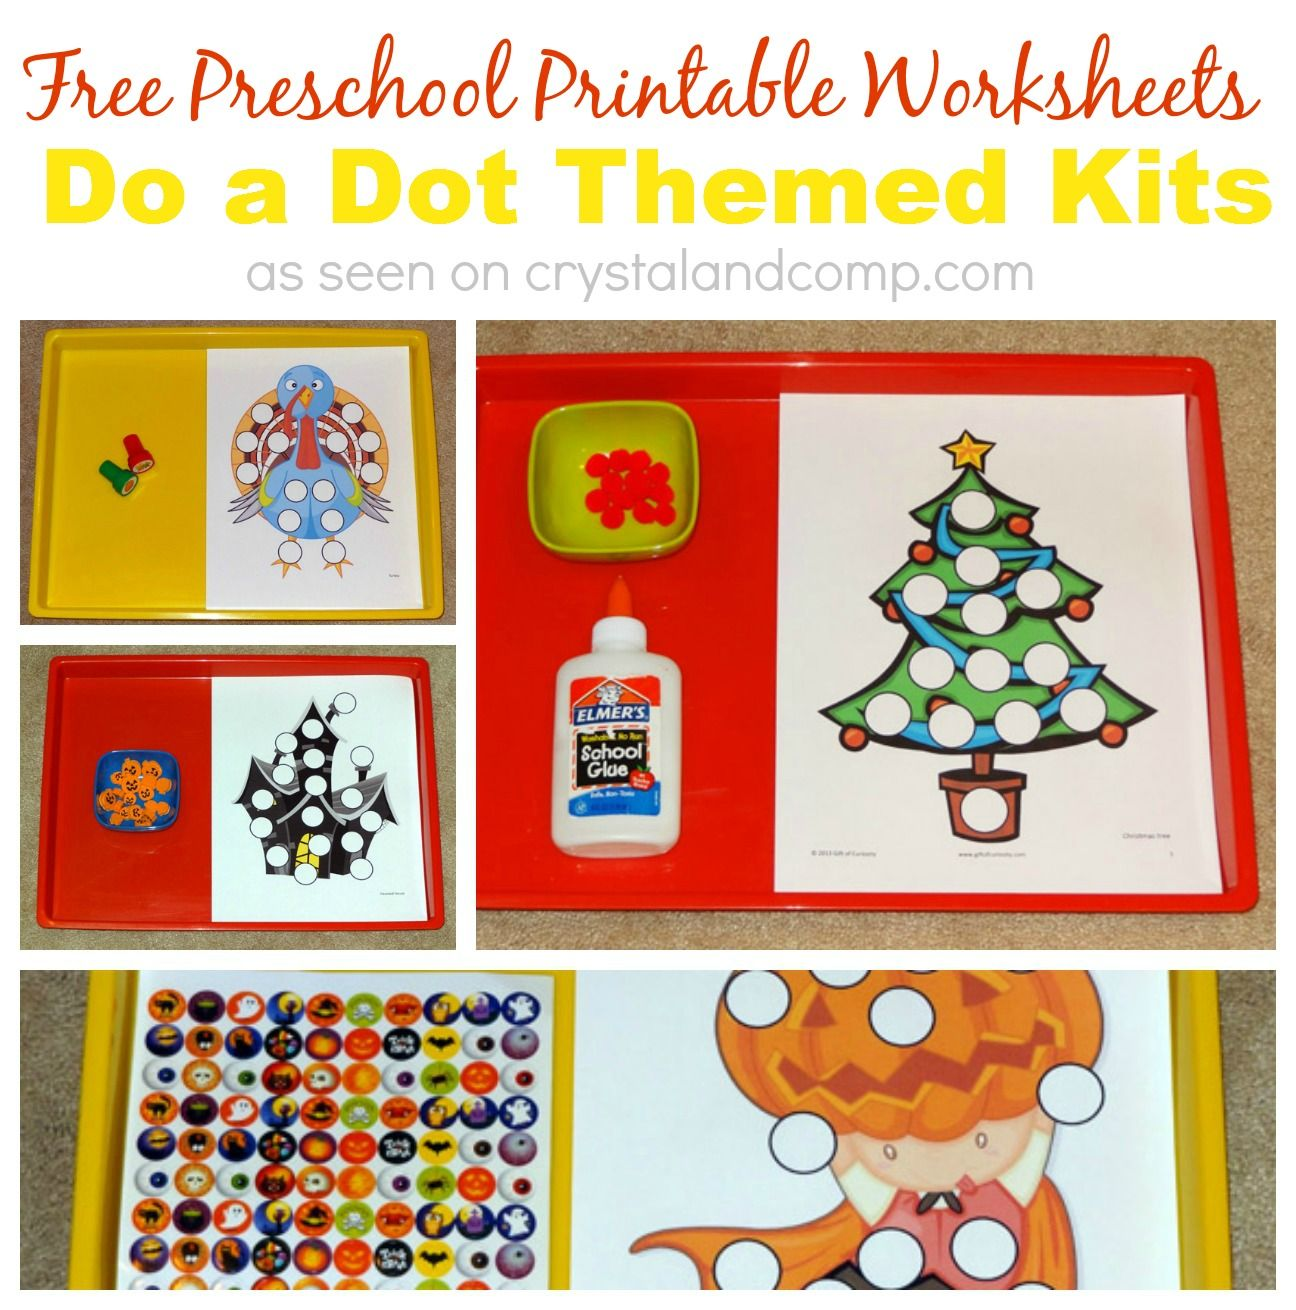 Free Preschool Printable Worksheets Do A Dot Themed Kits